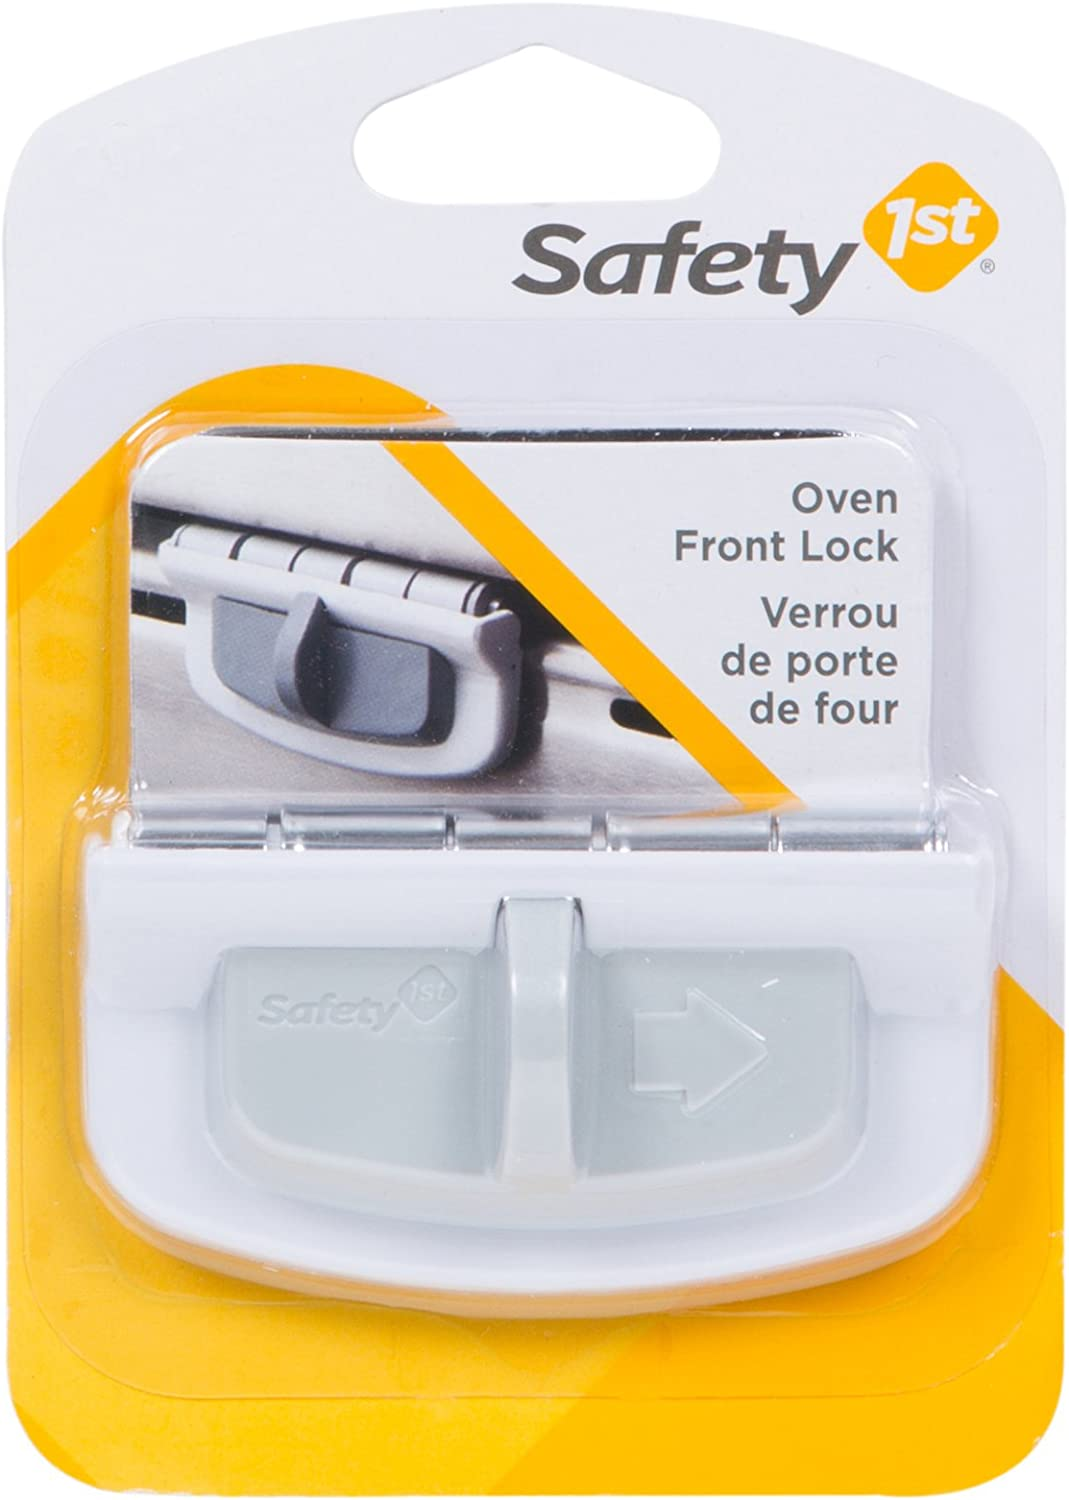 Safety 1st Oven Front Lock - 48408